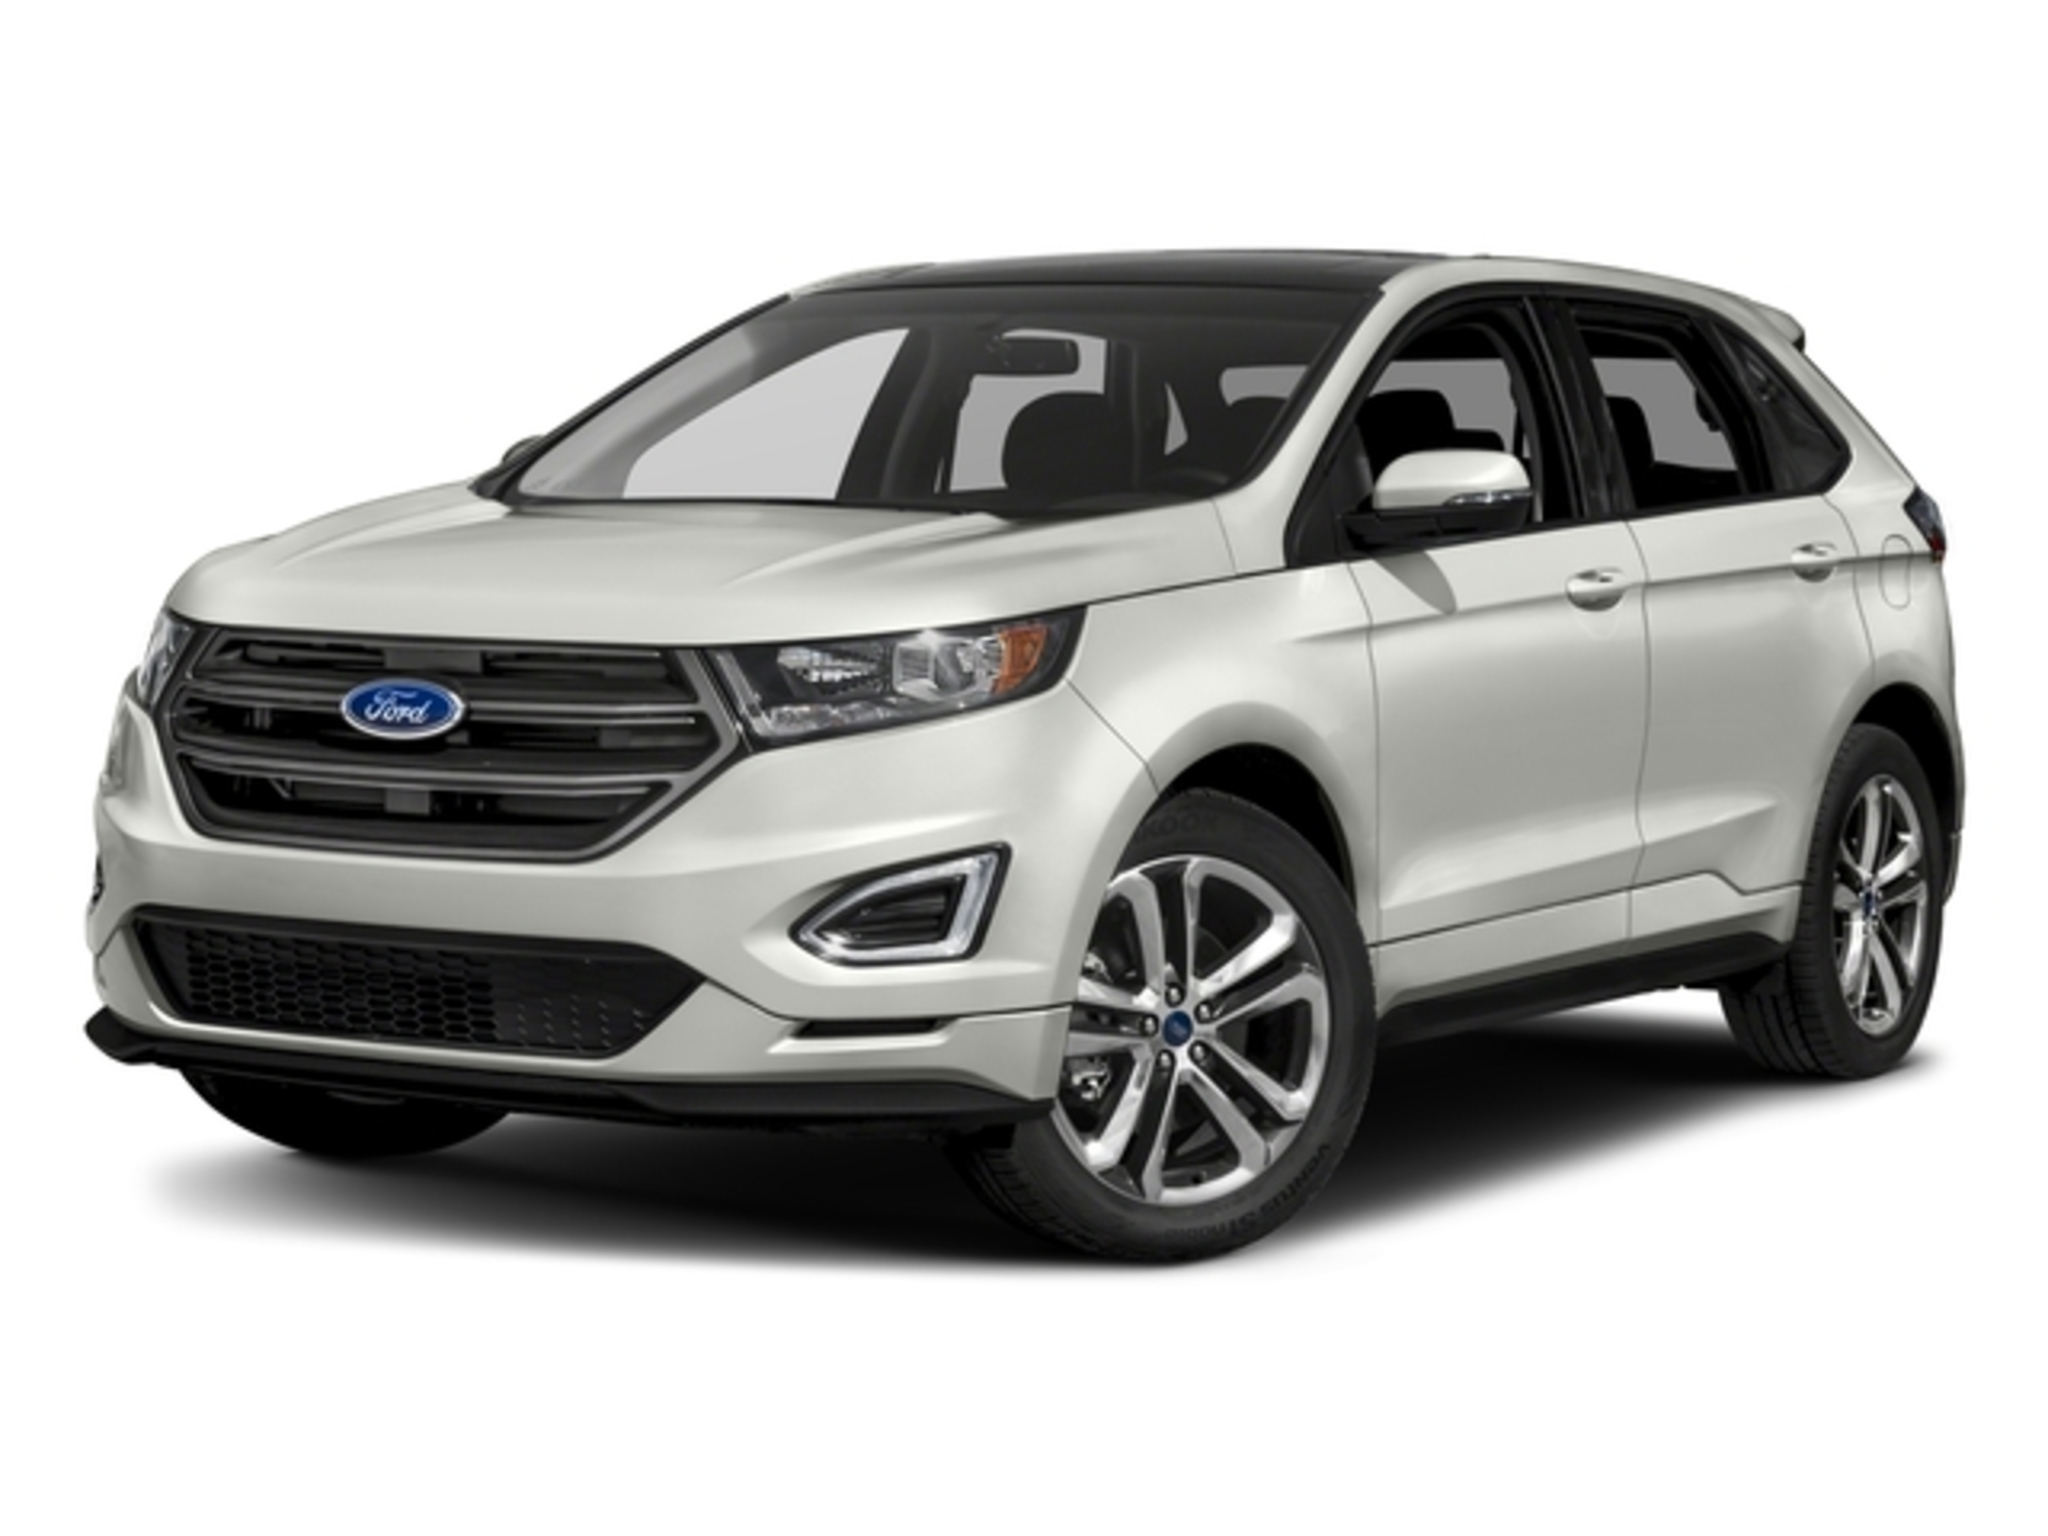 2017 Ford Edge S Trims Options